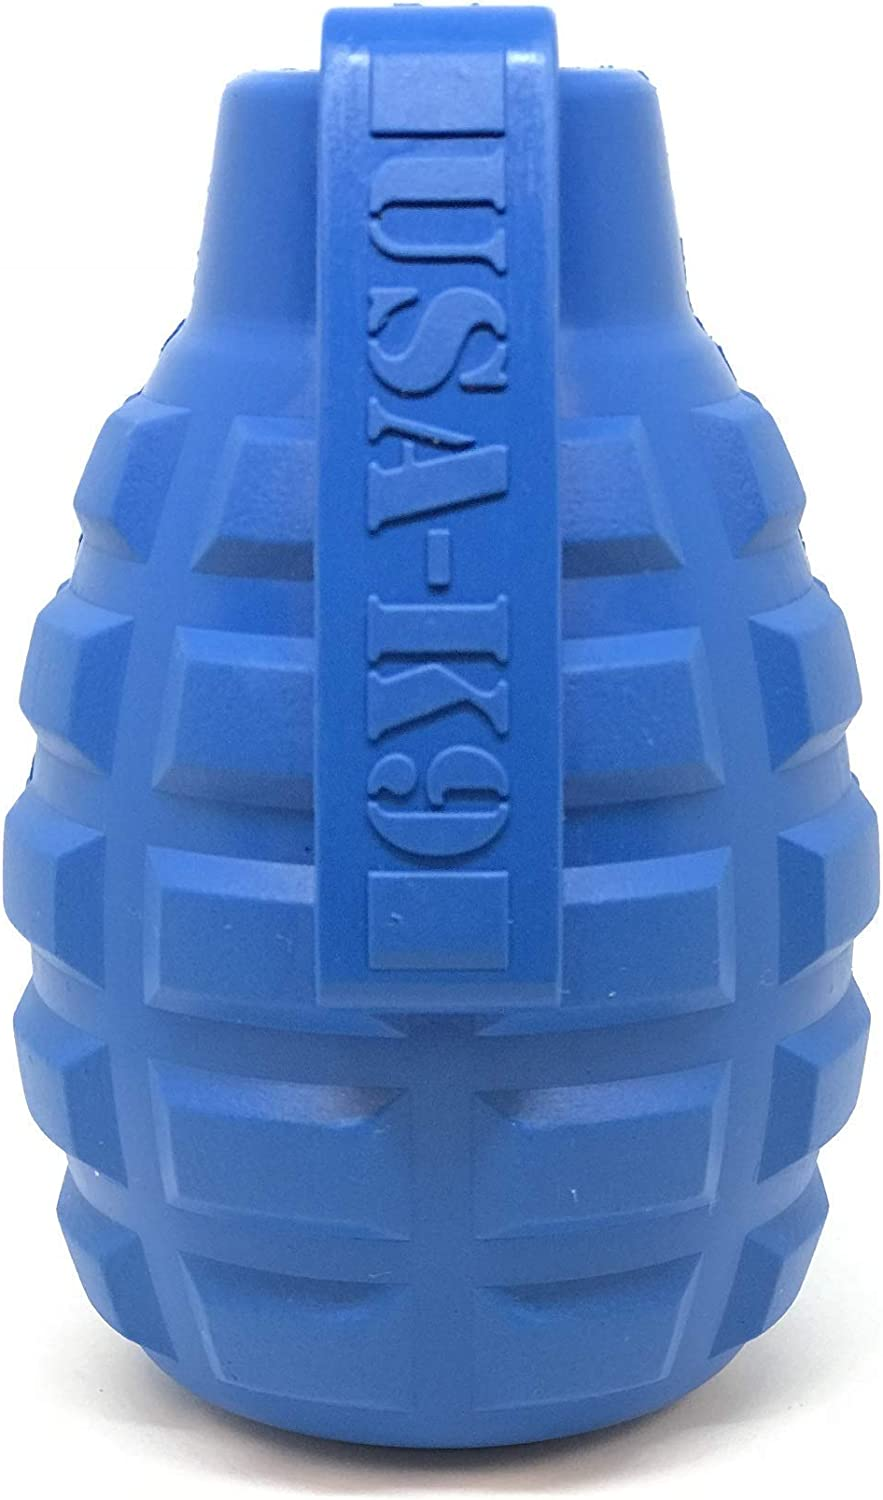 SodaPup USA-K9 Dog Toy - Natural Rubber Grenade Shaped Dog Chew Toy - Treat Dispenser - Slow Feeder - for Heavy Chewers - Made in USA